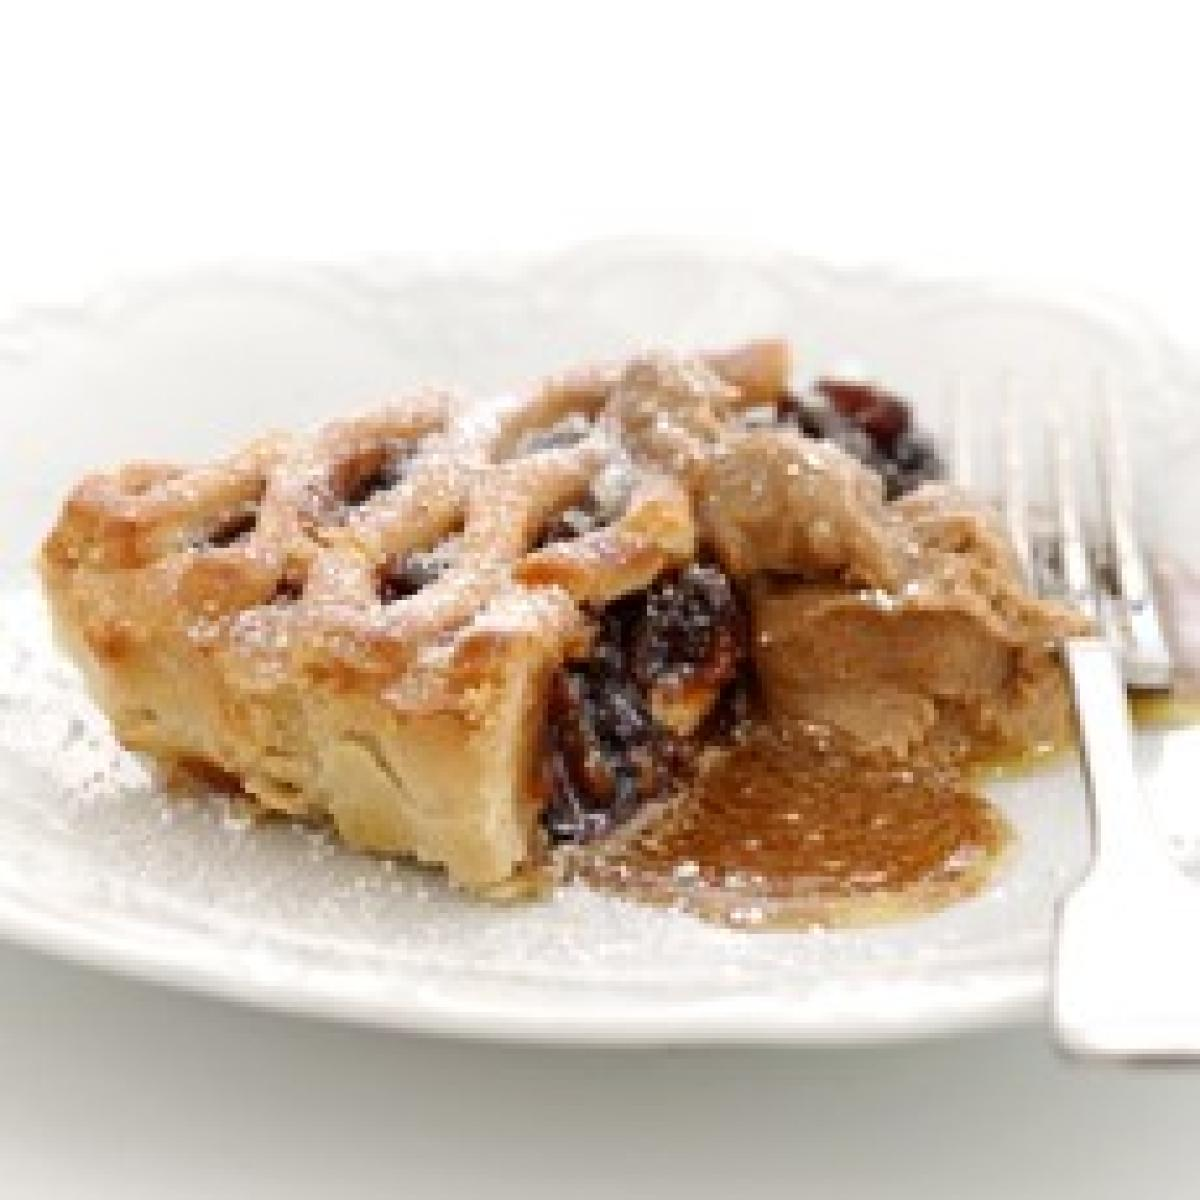 A picture of Delia's Lattice Mincemeat Dessert Tart recipe